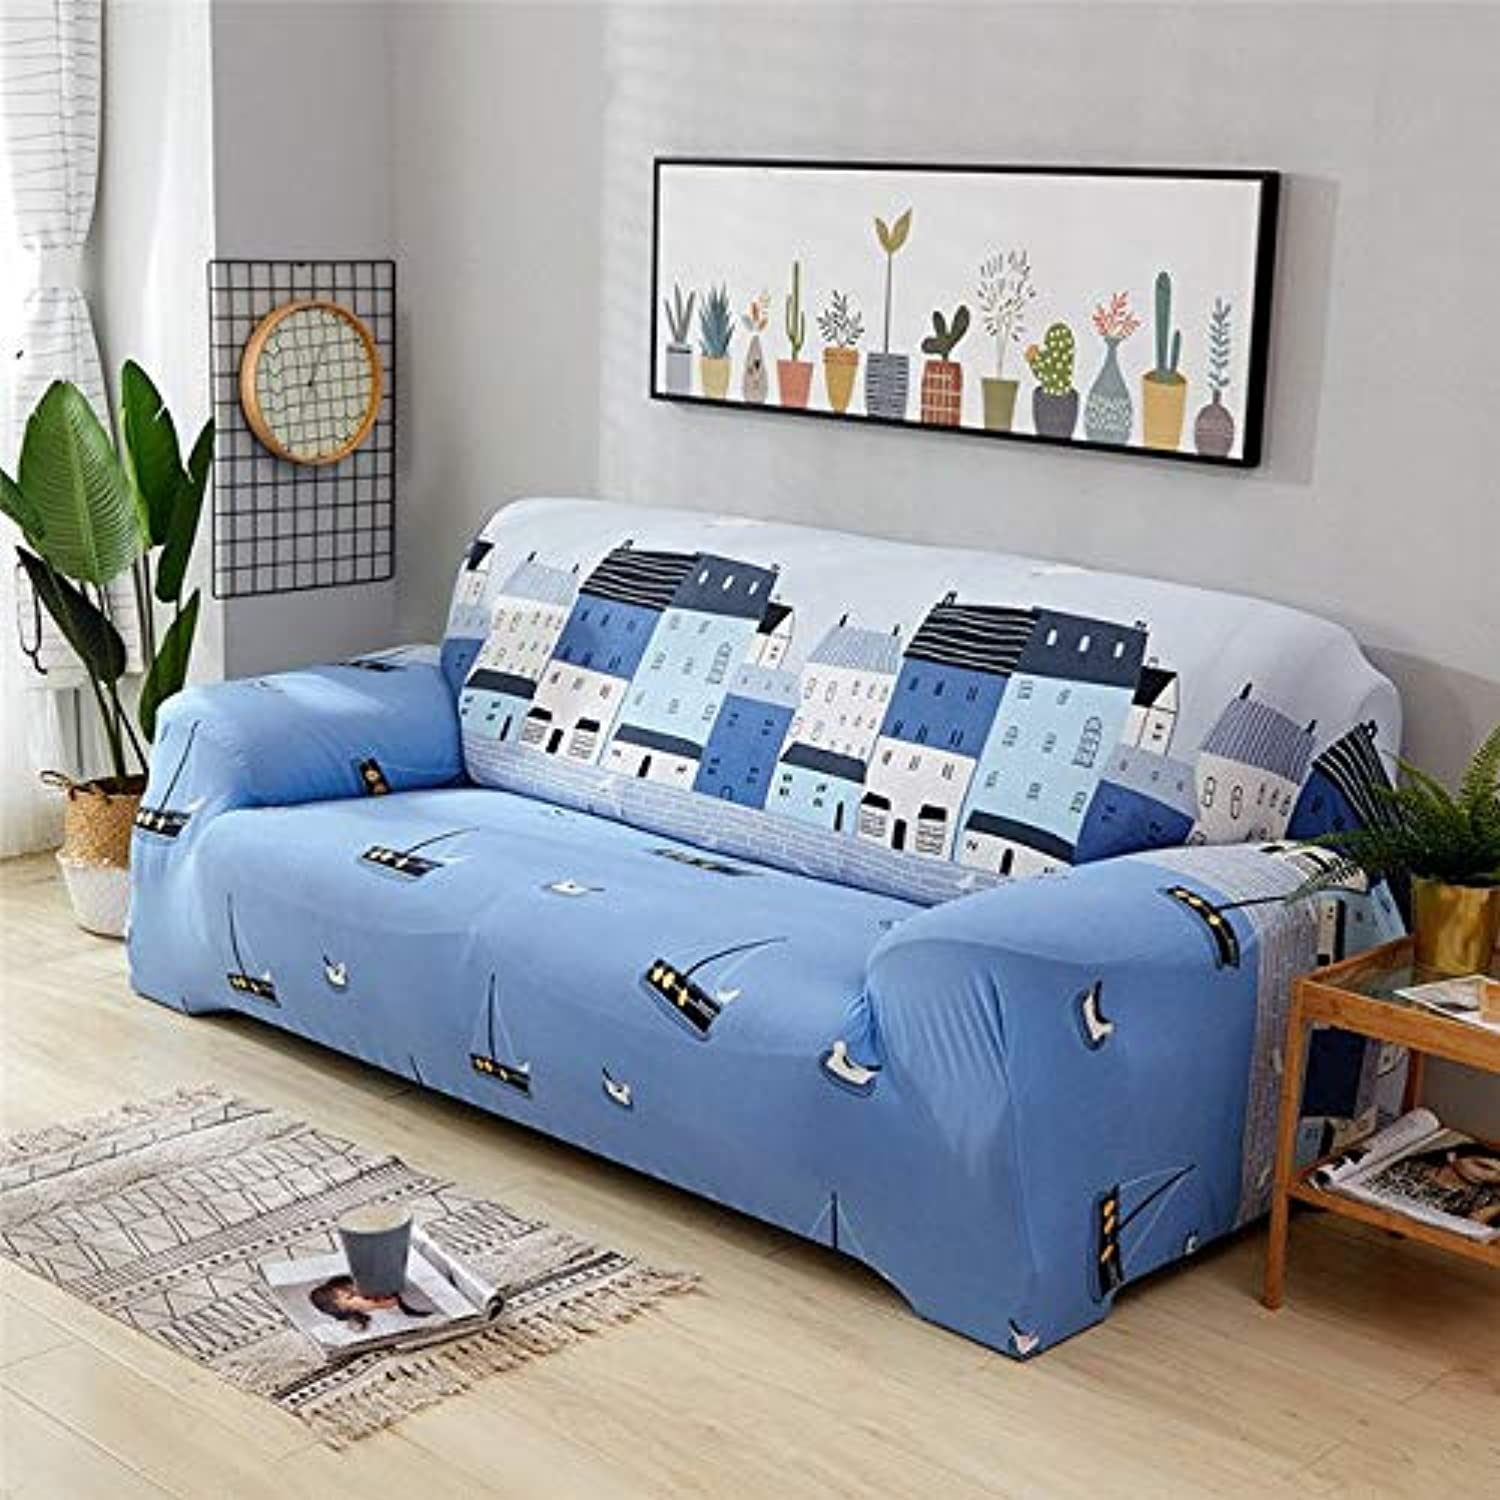 Elastic Sofa Wrap All-Inclusive Slip-Resistant Slipcovers Sofa Cover Furniture Predector Cushion Cover for 1 2 3 4 Seater Sofa   08, Two Seater